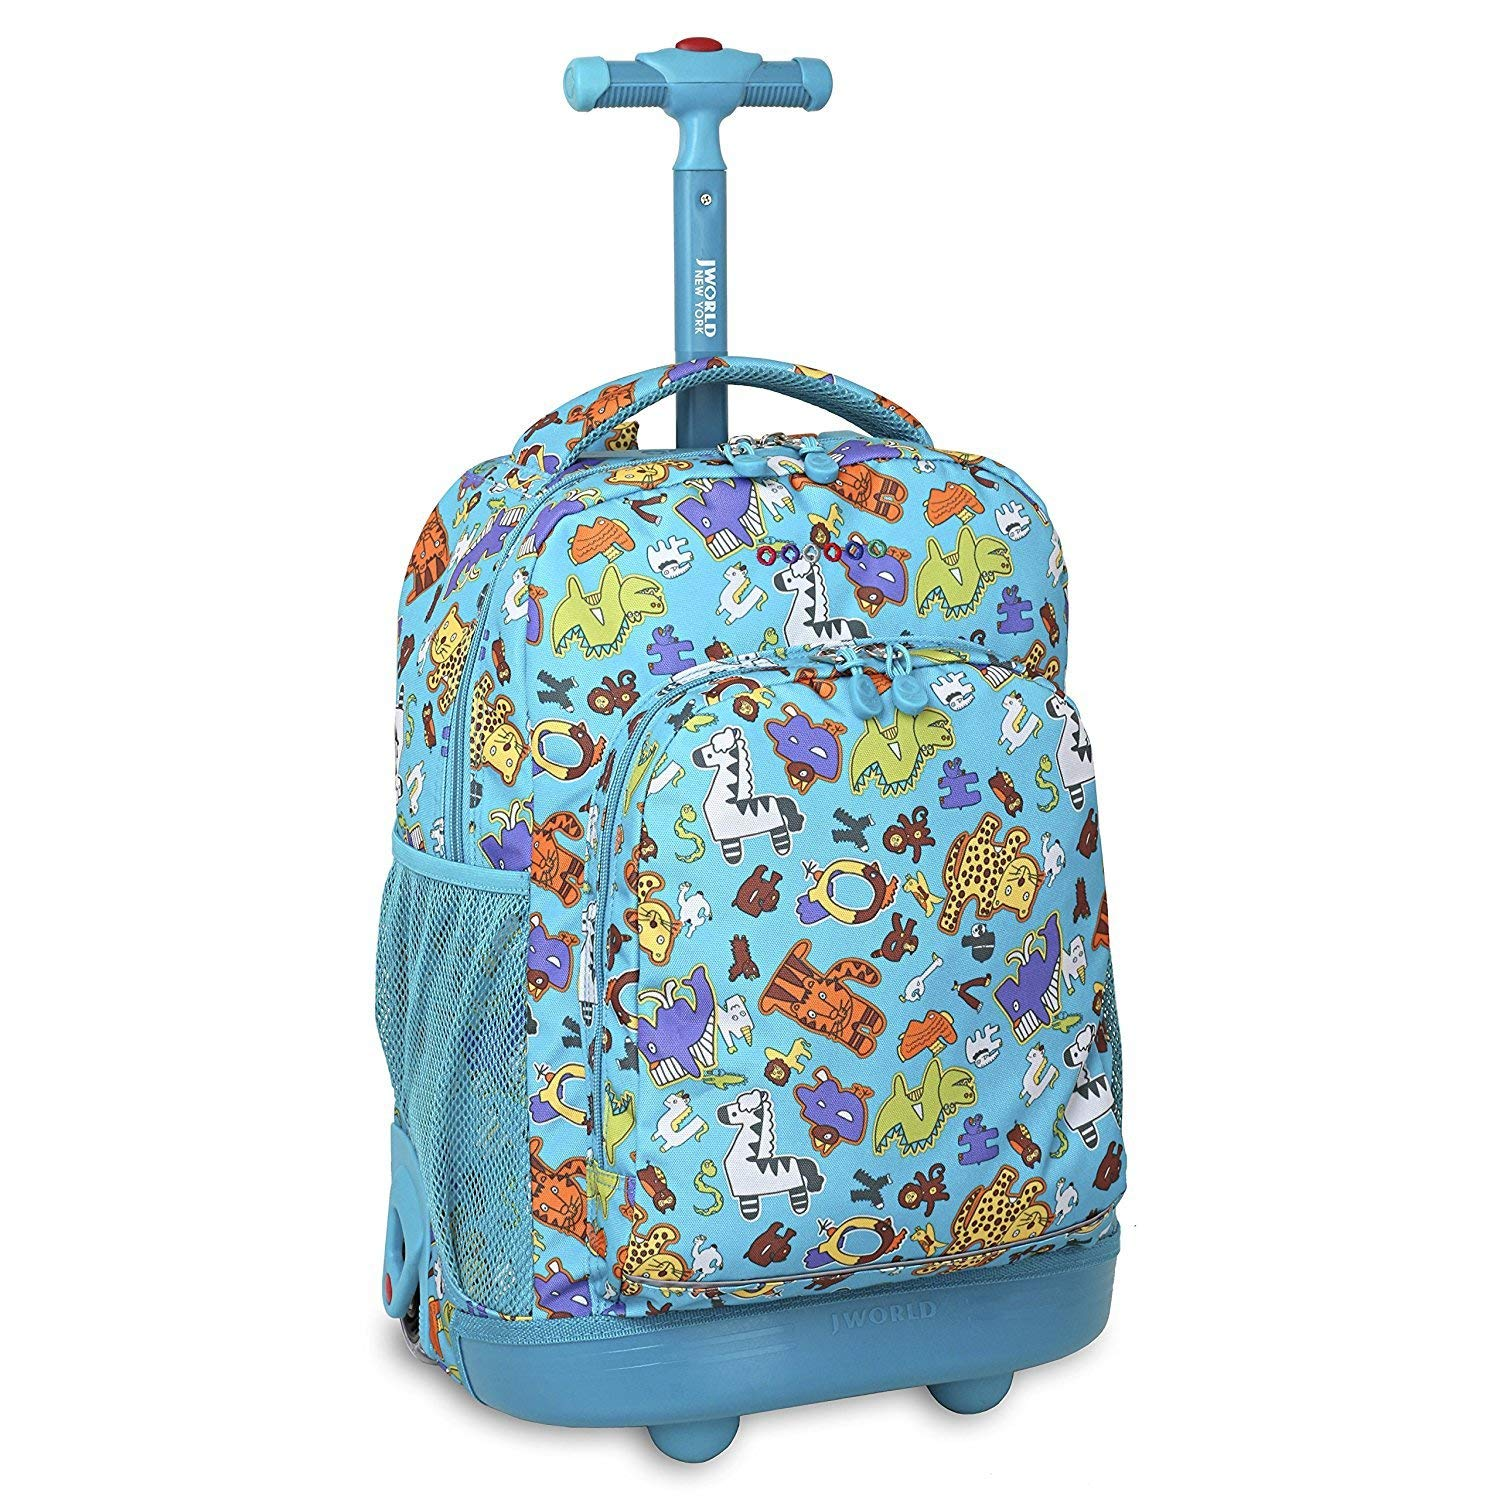 Buy Kids Blue Animal Characters Themed Rolling Backpack Kids School